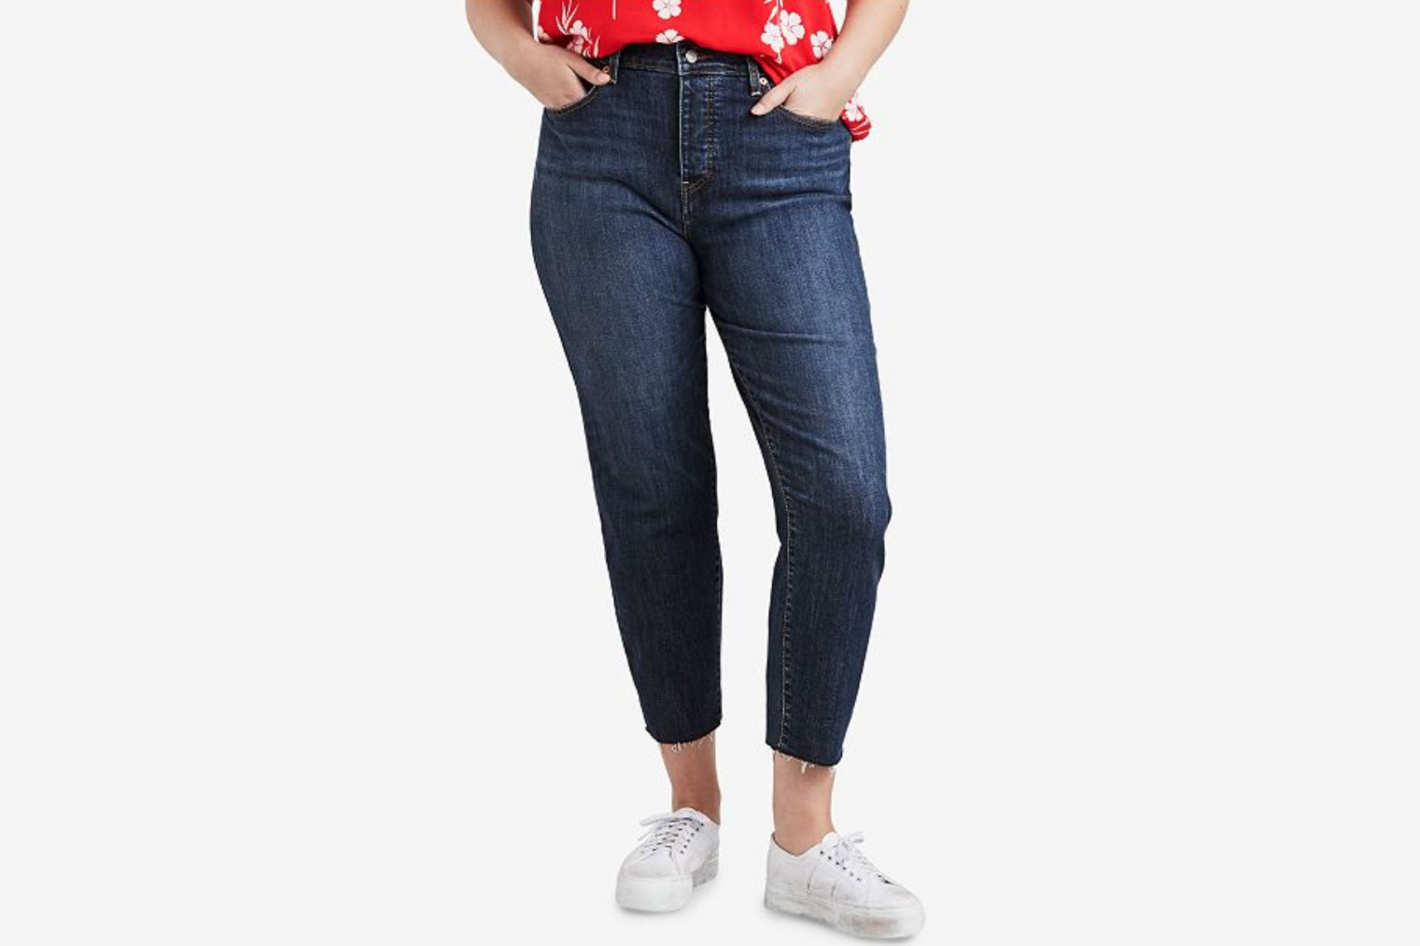 d5e2a5d038 Good American Good Legs High Waist Ankle Skinny Jeans at Nordstrom. Buy ·  Levi s Plus Size High-Waist Skinny Wedgie Jeans at Macy s